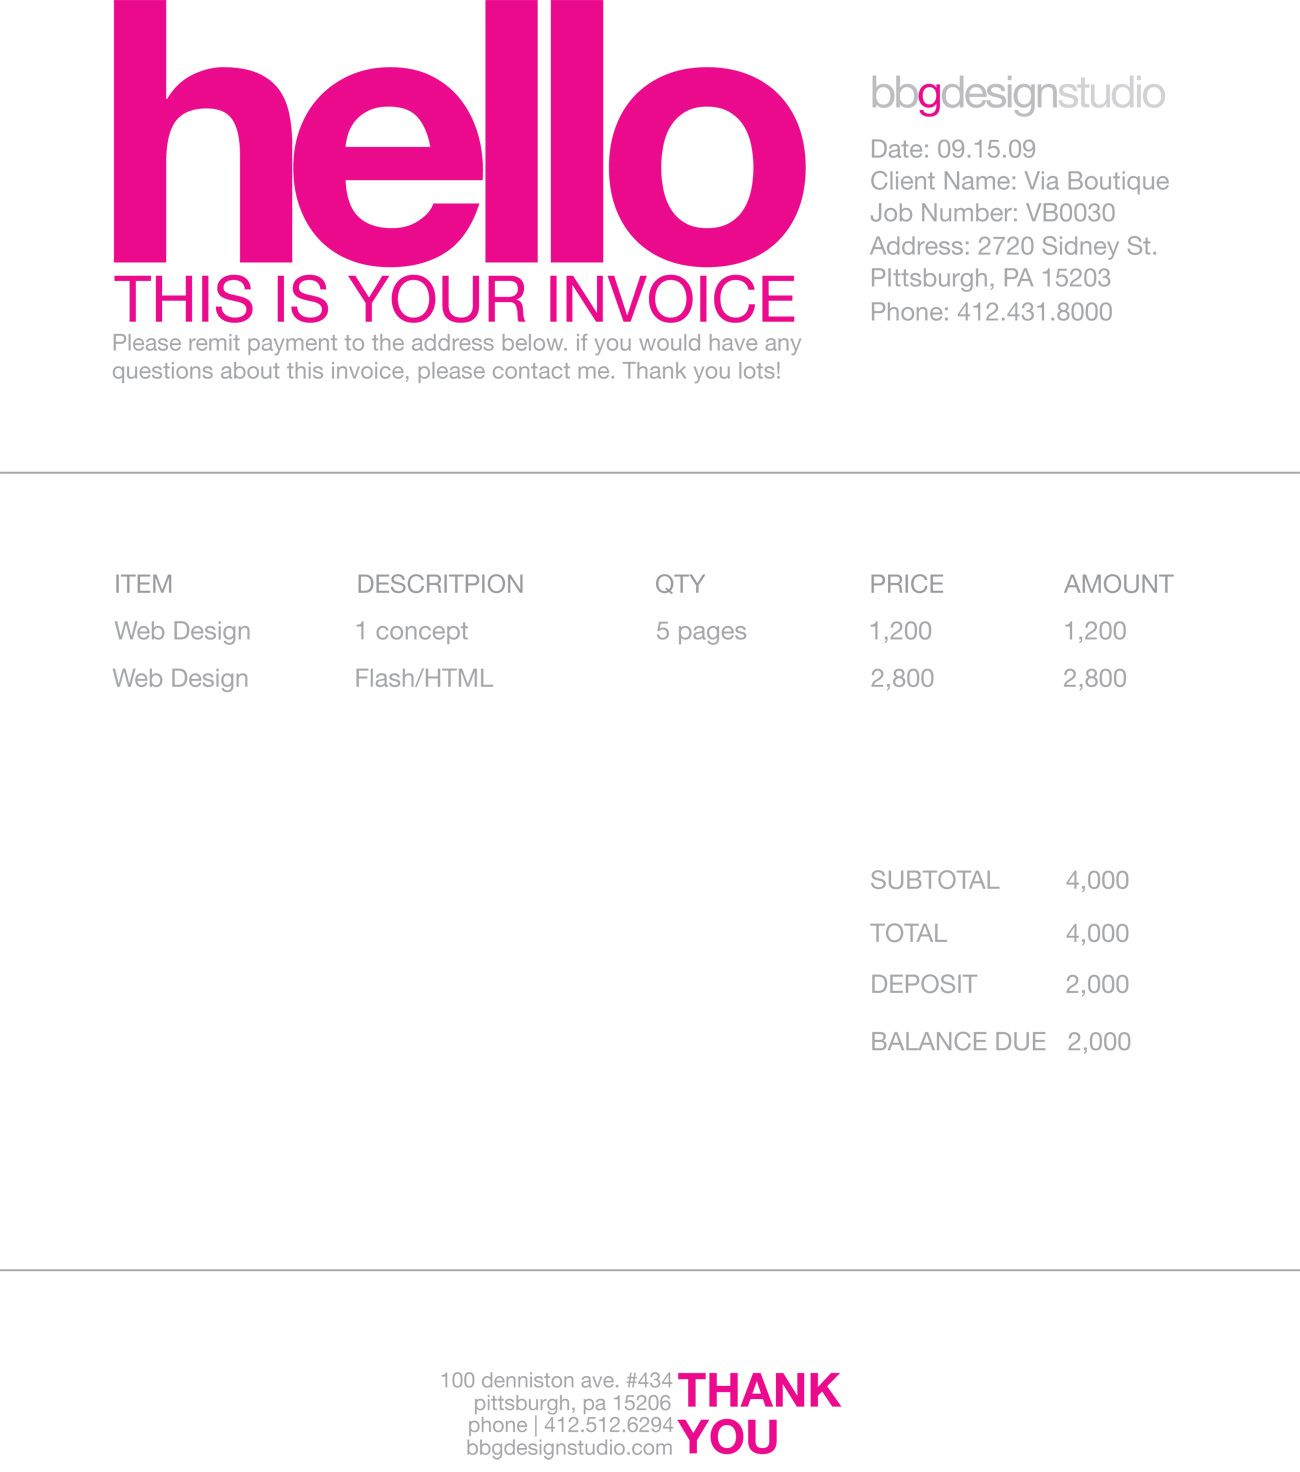 Coolmathgamesus  Seductive  Images About Invoice Design On Pinterest With Magnificent What Is The Invoice Price Besides Create Online Invoice Furthermore Free Online Invoice Maker With Lovely Proforma Invoice Sample Also Printable Invoice Pdf In Addition Invoice Envelopes And Commercial Invoices As Well As Aynax Free Invoices Additionally Consular Invoice From Pinterestcom With Coolmathgamesus  Magnificent  Images About Invoice Design On Pinterest With Lovely What Is The Invoice Price Besides Create Online Invoice Furthermore Free Online Invoice Maker And Seductive Proforma Invoice Sample Also Printable Invoice Pdf In Addition Invoice Envelopes From Pinterestcom